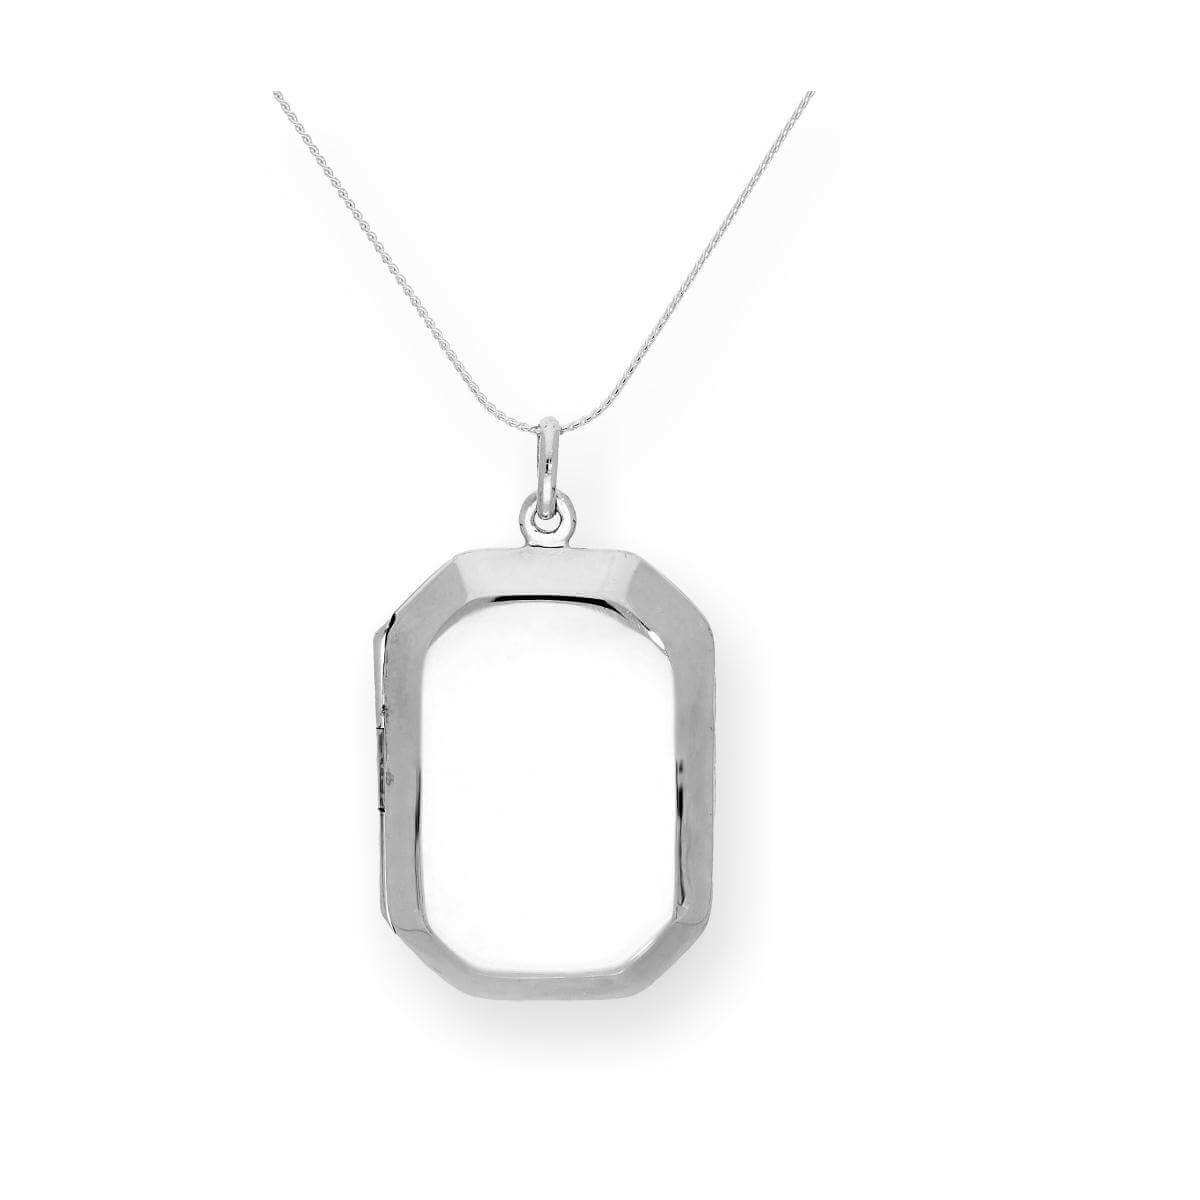 Large Sterling Silver Engravable Octagonal Locket on Chain 16 - 22 Inches